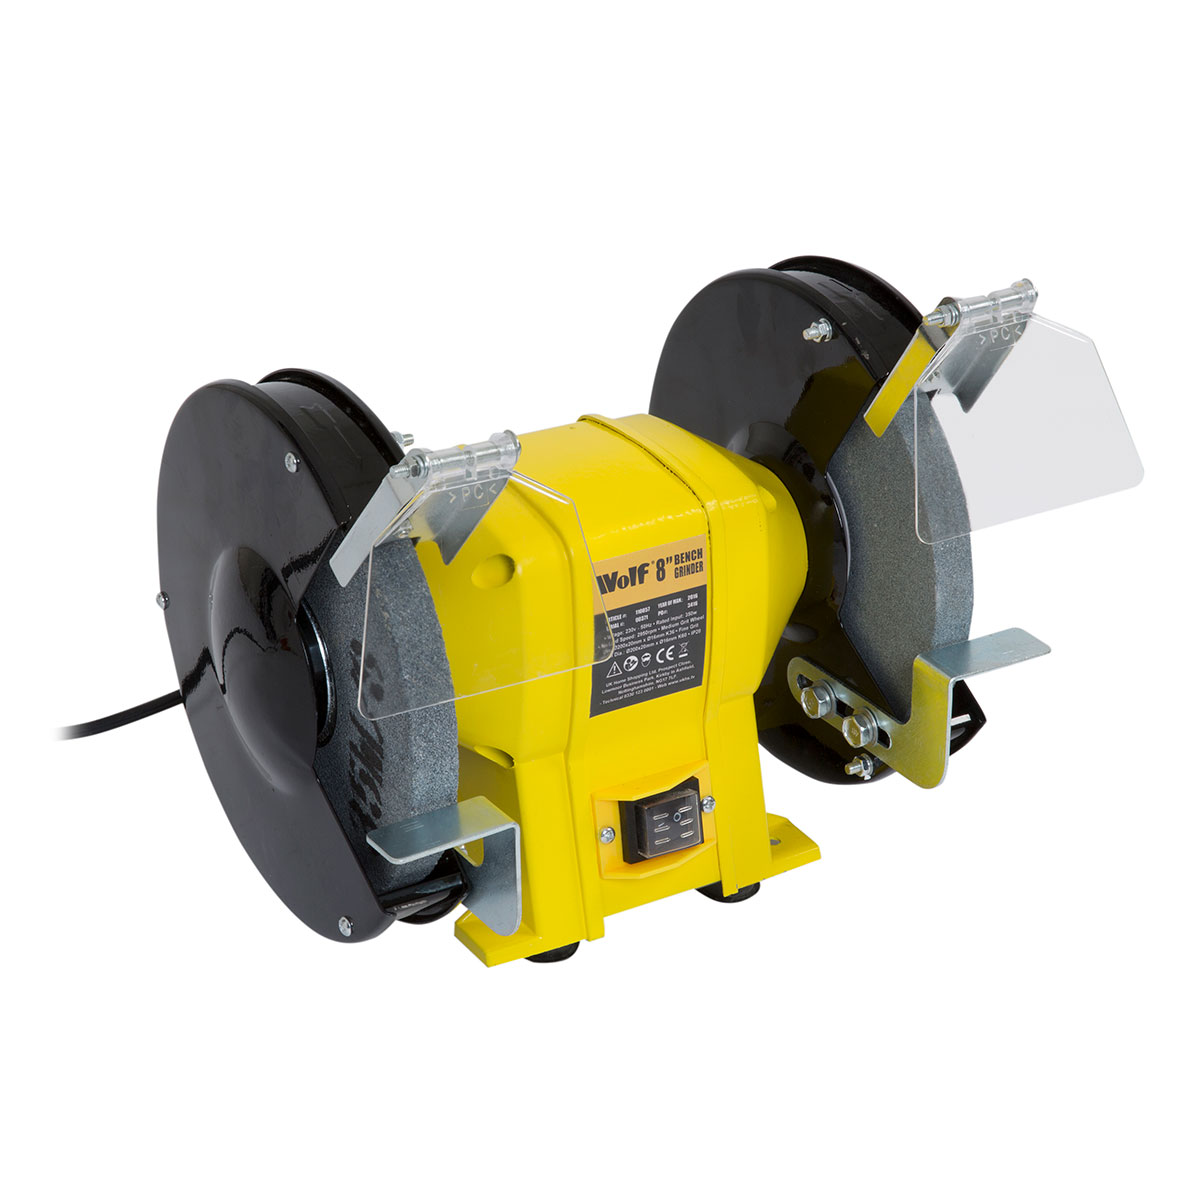 Wolf 8 350w Dual Twin Grinding Stone Bench Grinder 200mm